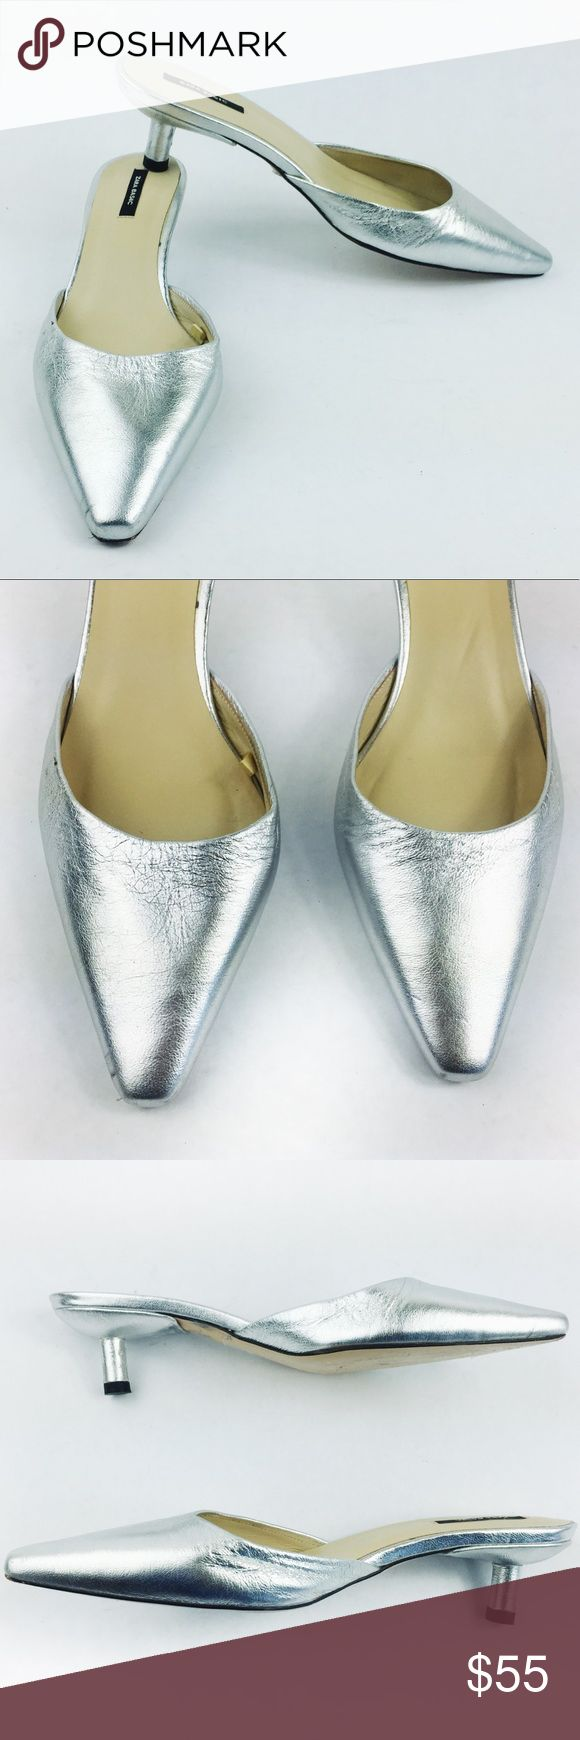 ZARA SILVER KITTEN HEELS SIZE 8 Sexy Zara silver kitten heels in size 8. Excellent used condition, minor scuffing as shown on zoom pics and minor wrinkling due to being in a closet. Just gorgeous to wear with skinny jeans or a nice dress! MAKE AN OFFER! 👌💫 Zara Shoes Heels